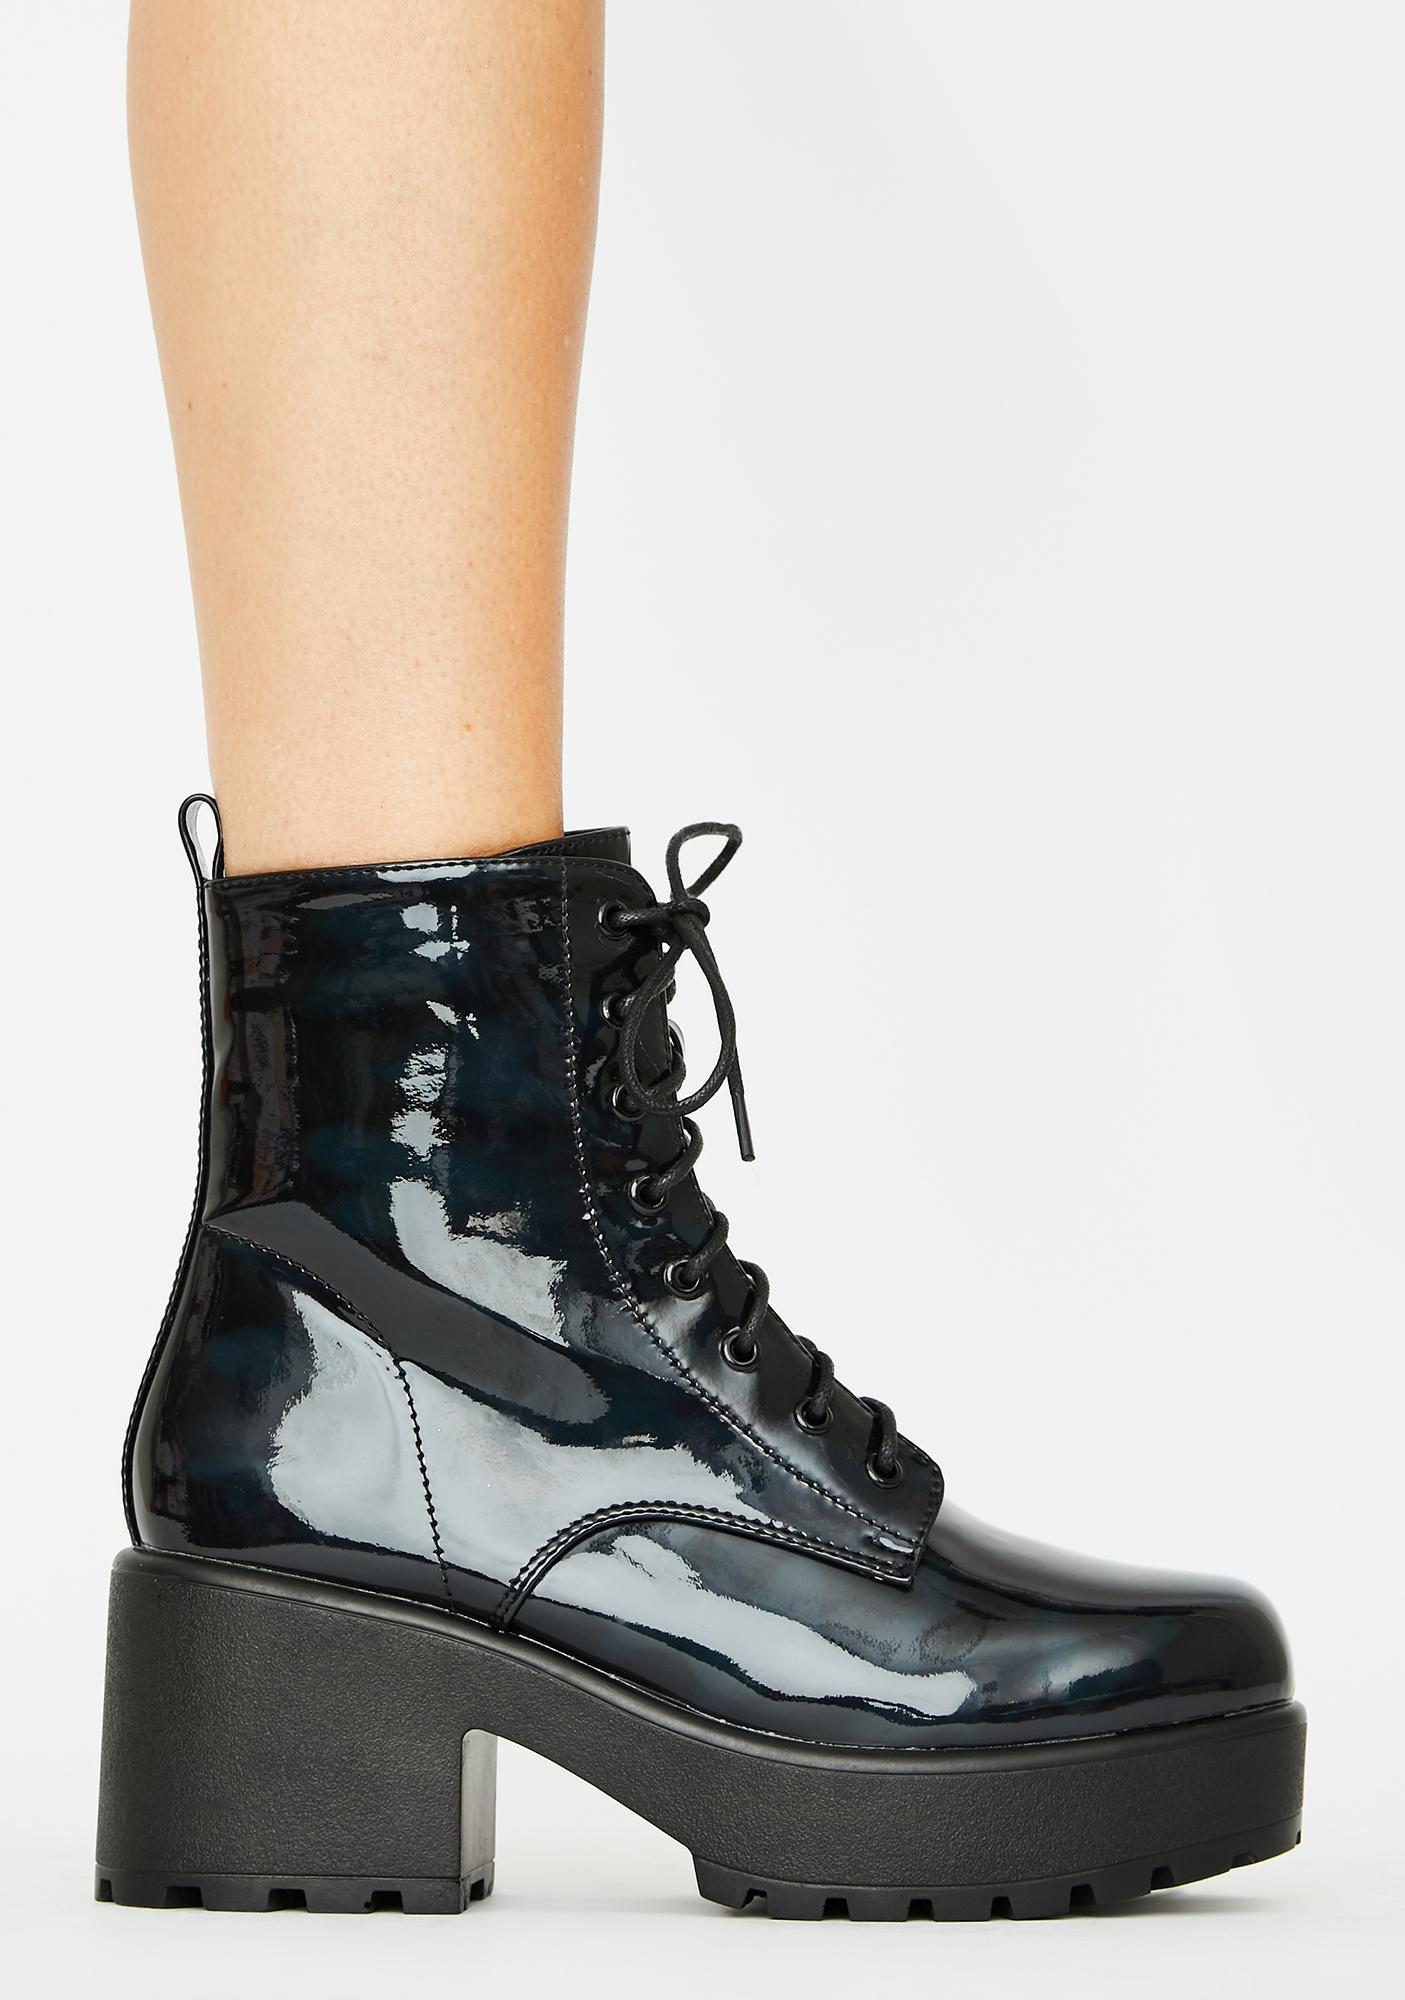 Koi Footwear Gin Holographic Platform Boots